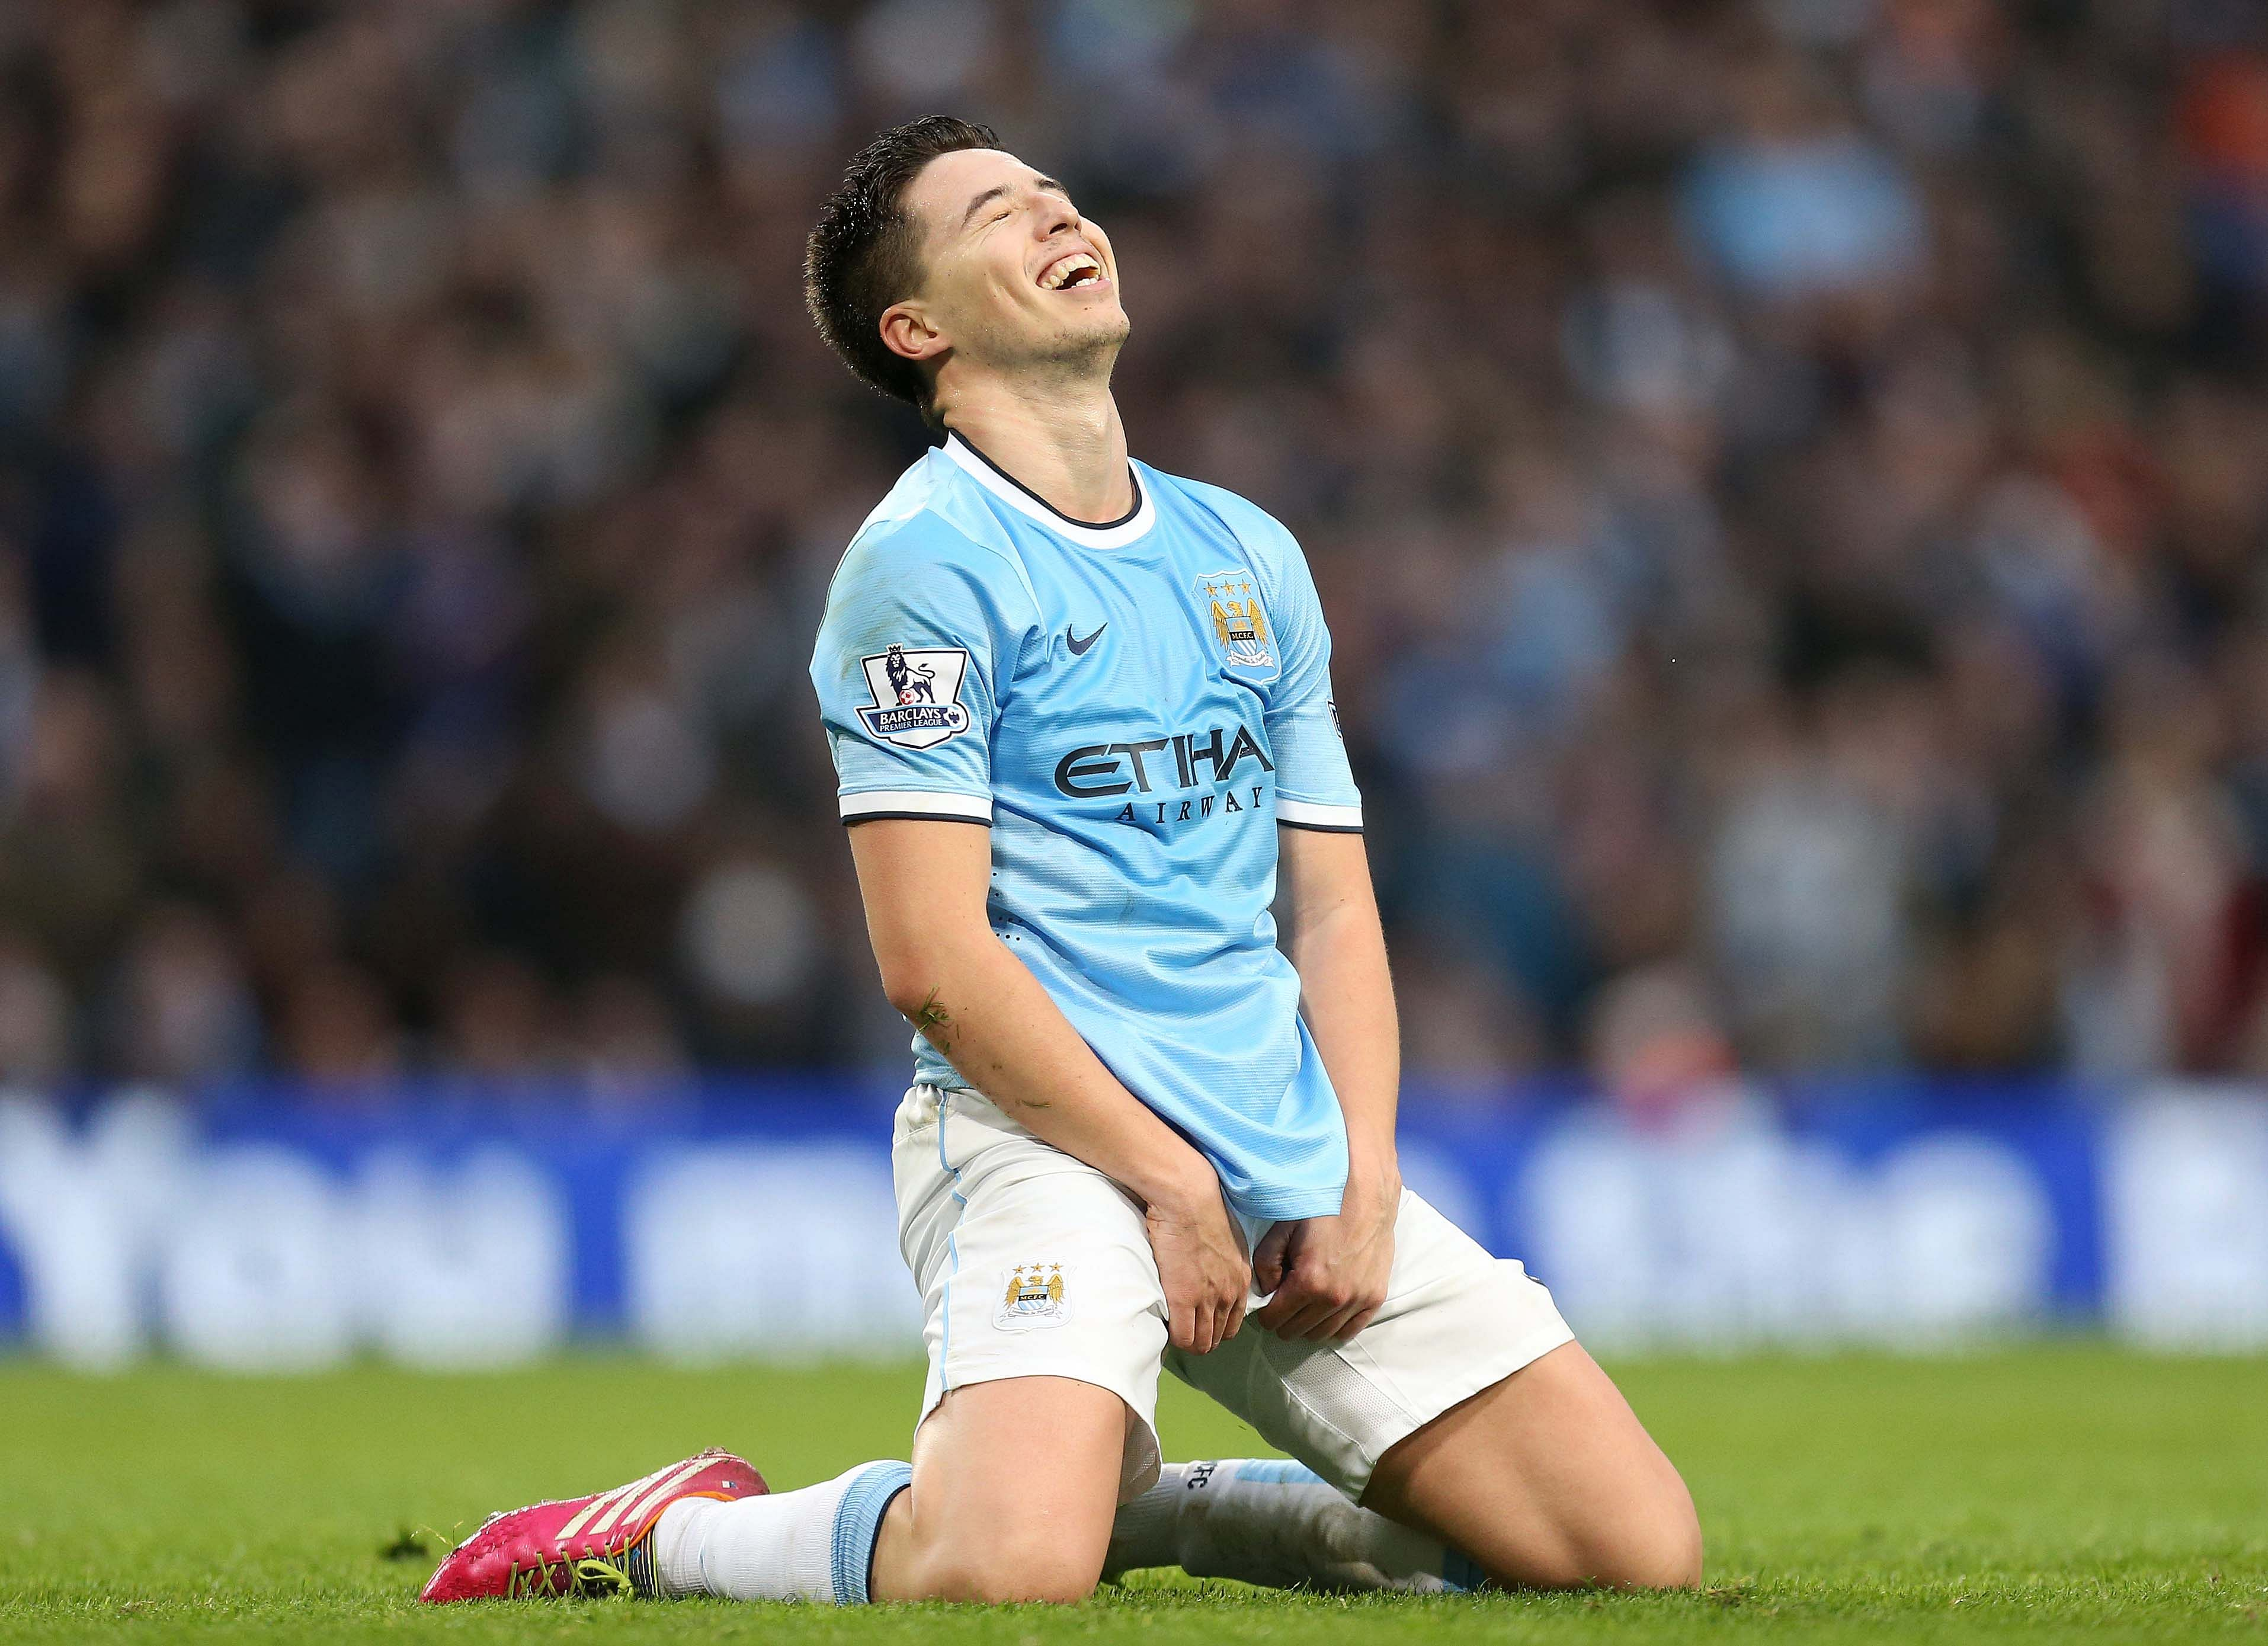 Roberto Mancini accuses Manchester City's Samir Nasri of wasting his potential